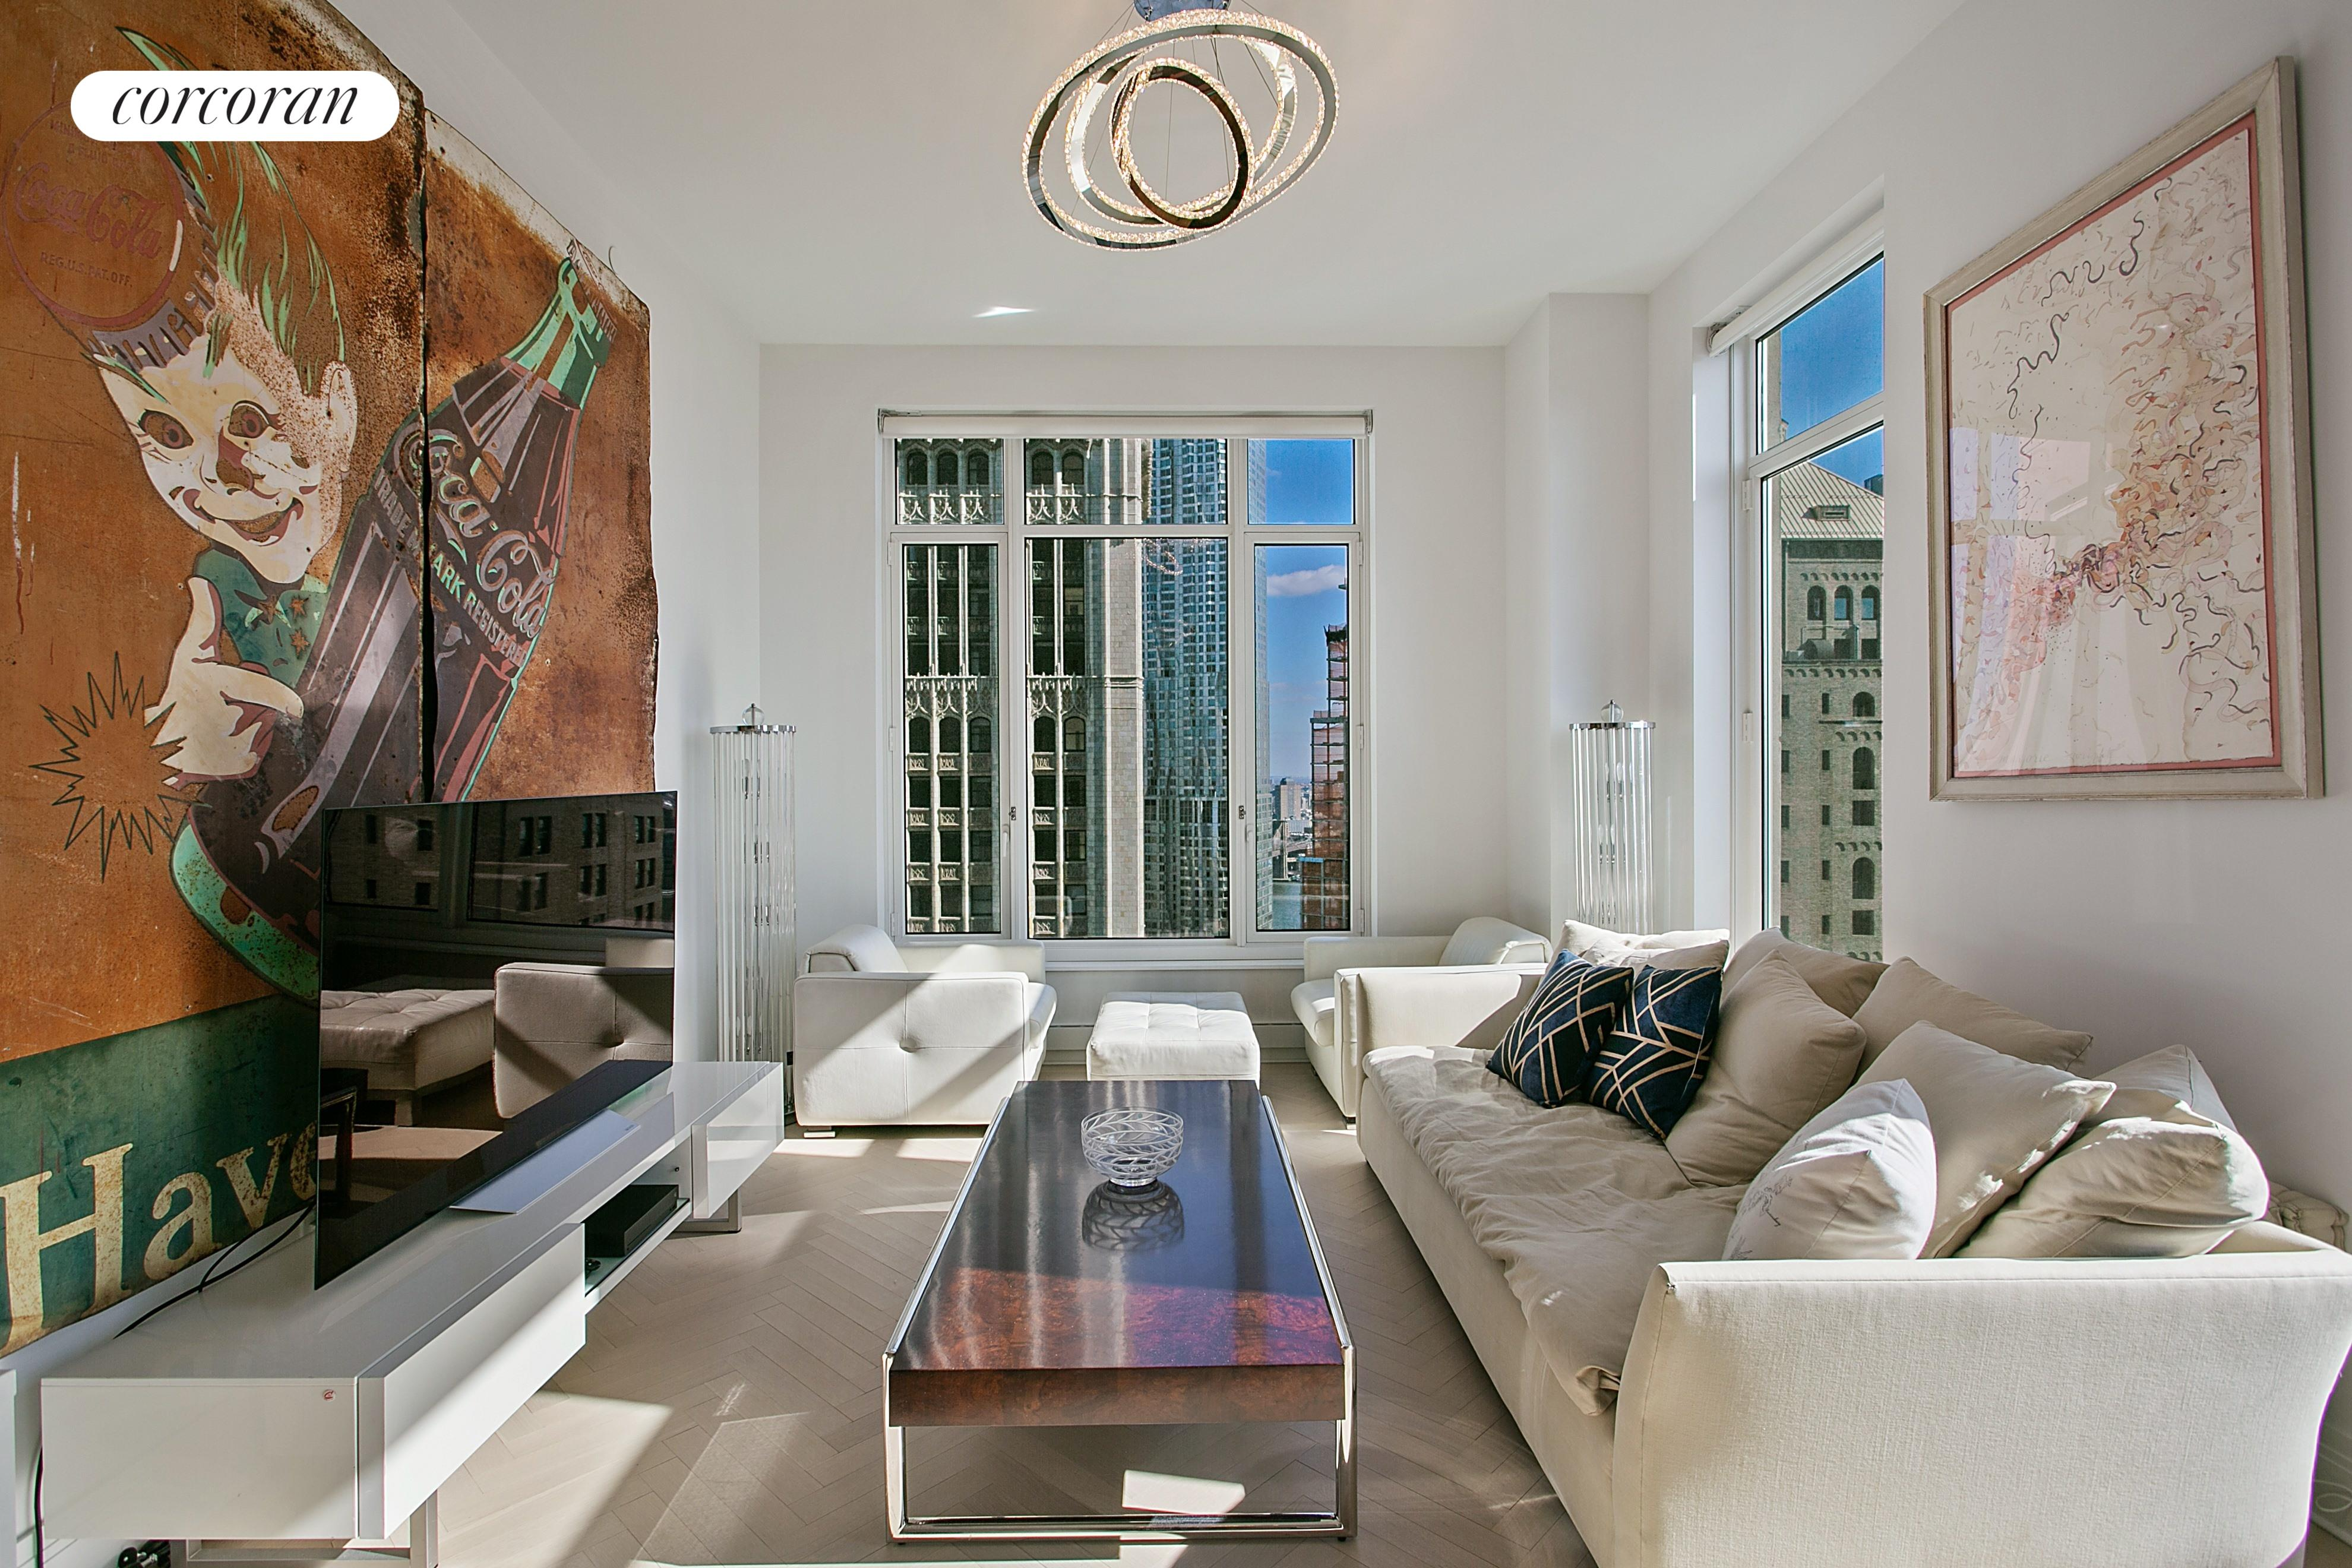 Incredible opportunity to rent  Apartment 52C (1543 sf ) plus Accessory suite 39E (501 sf) at 30 Park Place. Apartment 52C features 2 bedrooms and 2.5 bathrooms. Located on the southeast corner, this residence features brilliant light and dual exposure views from a corner Living/Dining Room and corner Master Bedroom Suite. Generous storage is provided through 3 walk-in closets. Welcome to 5-star living at 30 Park Place, Four Seasons Private Residences New York, Downtown. Accompanying this apartment is Suite 39E. This is a unique opportunity to purchase an accessory suite in the Four Seasons Private Residences New York Downtown at 30 Park Place. This west facing studio suite has a kitchen washer/dryer and one bathroom with west facing river views. Developed by visionary Silverstein Properties, Inc. Masterfully designed by Robert A.M. Stern Architects. Services by legendary Four Seasons Hotels and Resorts. With residences beginning on the 39th floor, the sweeping views are unparalleled. Residents may enjoy access to Four Seasons Hotel amenities including a spa and salon facilities, 75' swimming pool, attended parking garage, restaurant, bar and lounge, ballroom facilities, and meeting rooms, as well as a comprehensive suite of a la carte services. The 38th floor is devoted to private residential amenities including a fitness center and yoga studio, private dining room, conservatory and lounge with access to loggias, Roto-designed kid's playroom, and screening room. Interior finishes include solid oak wood flooring with herringbone pattern in the formal rooms, Bilotta rift-cut oak kitchen cabinetry, Gaggenau appliances, marble bathrooms with Robert A.M. Stern custom-designed vanities.